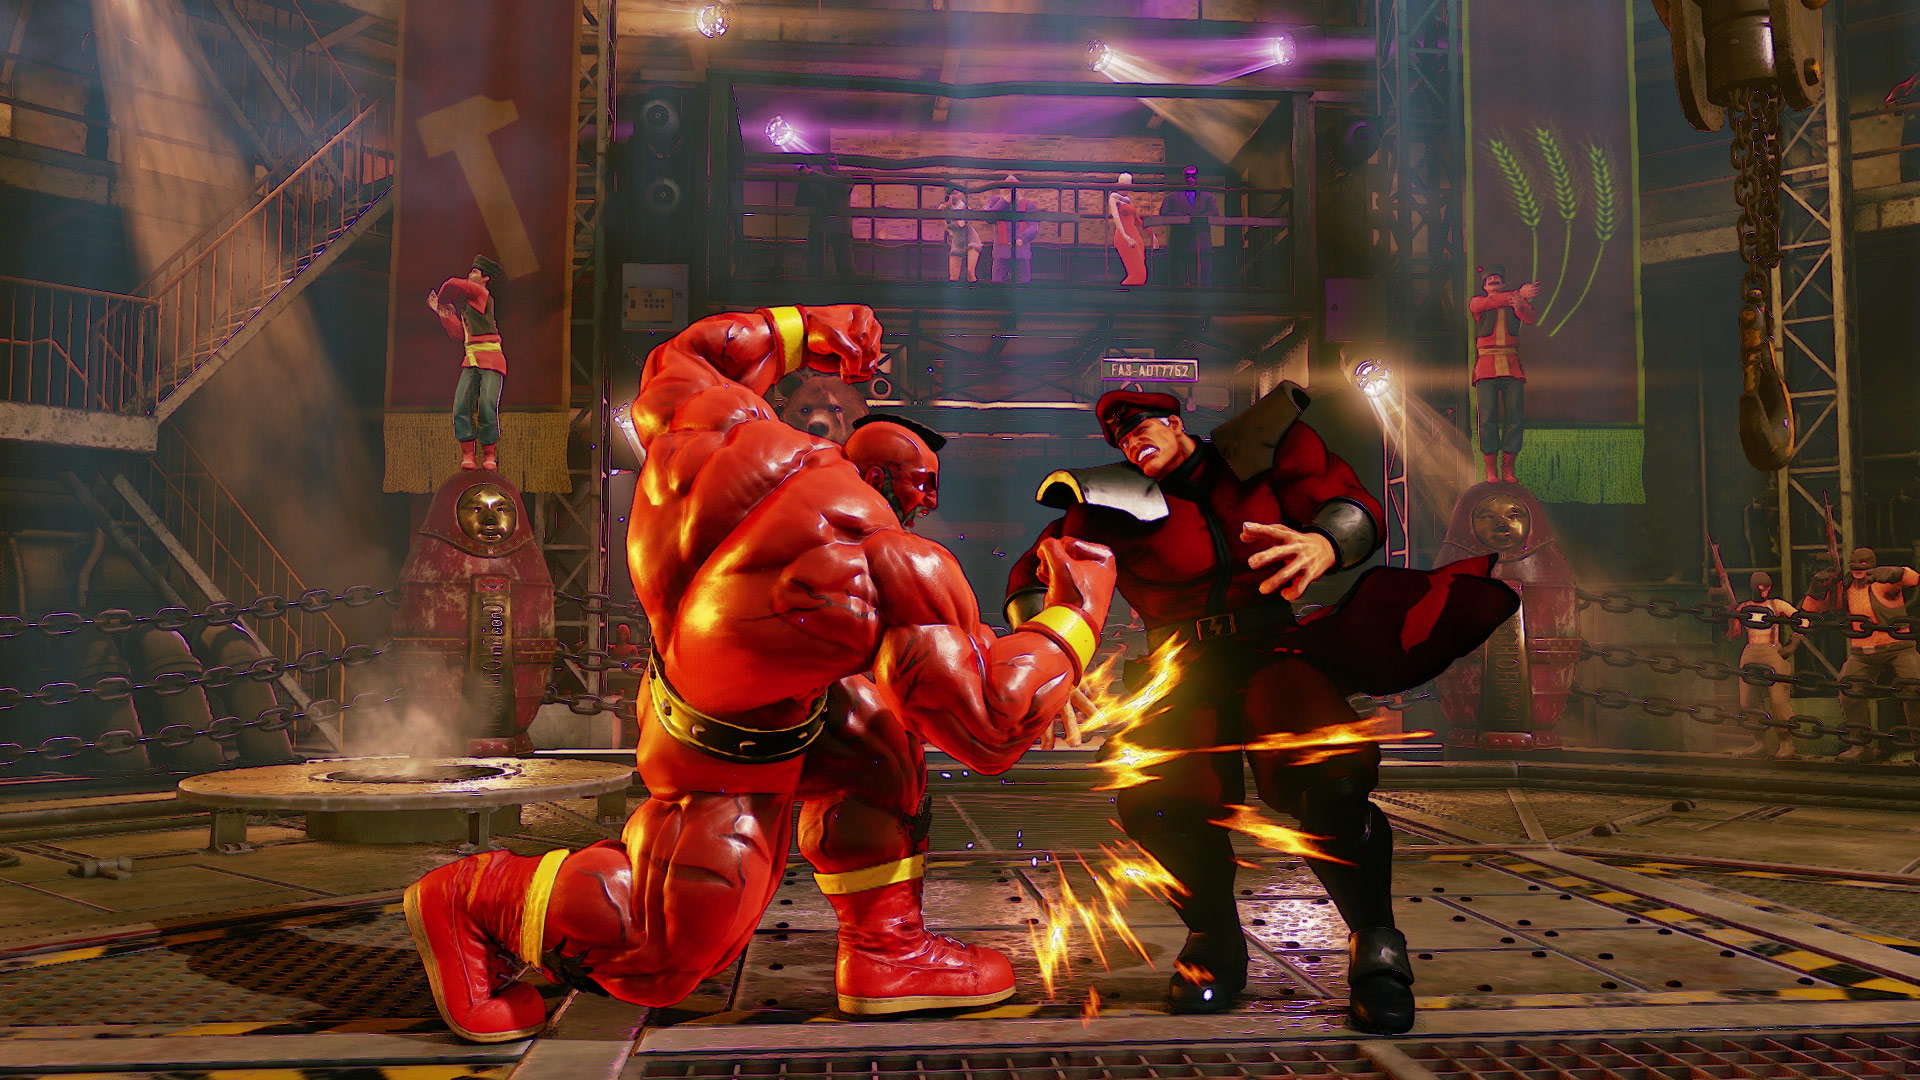 Zangief returns in Street Fighter 5 15 out of 18 image gallery